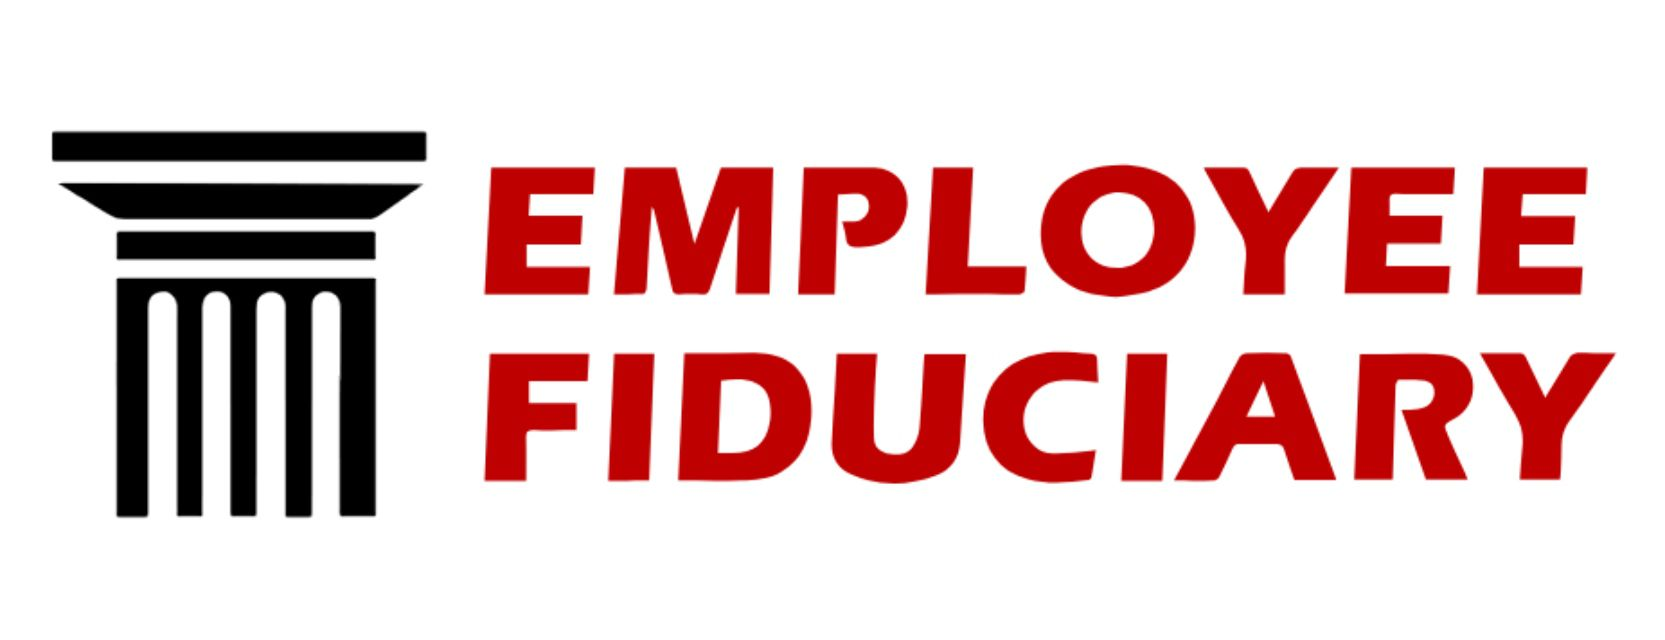 Employee Fiduciary 401(k) Review - 2019